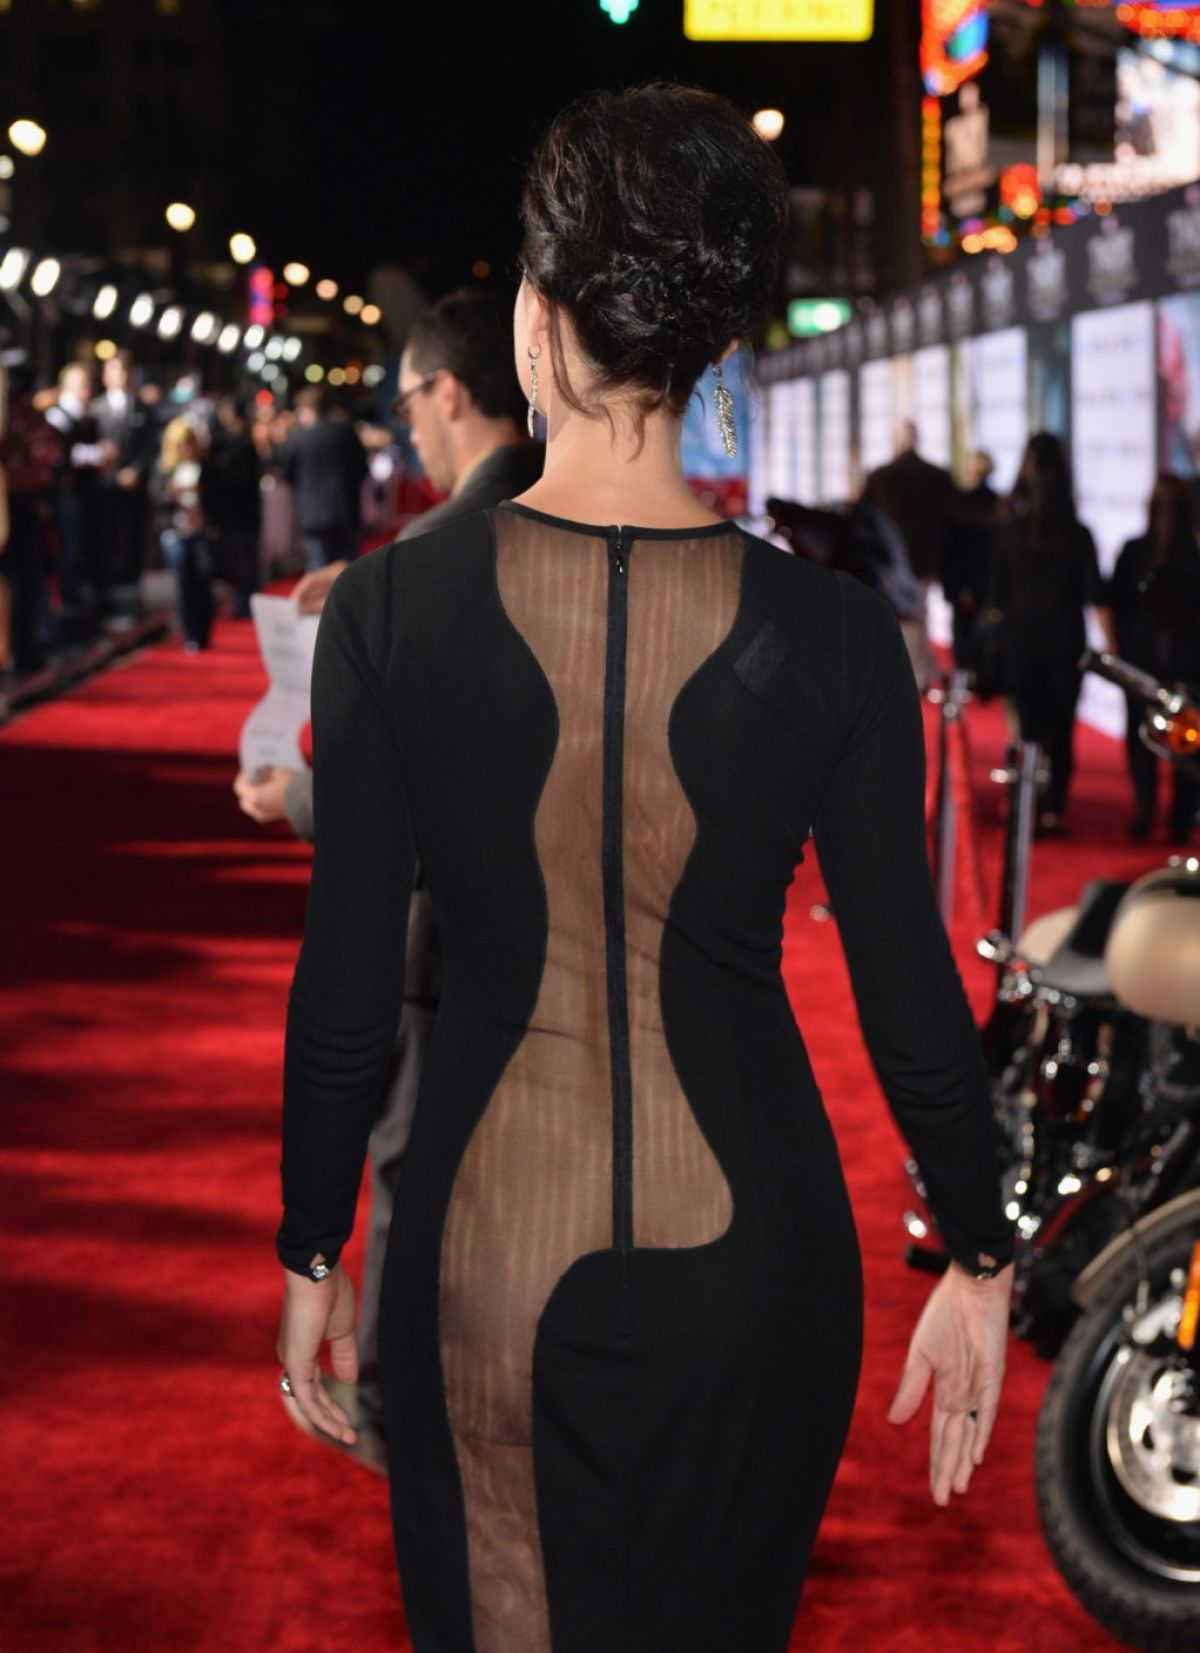 jaimie-alexander-at-thor-the-dark-world-premiere-in-hollywood_23.jpg - 162.66 KB